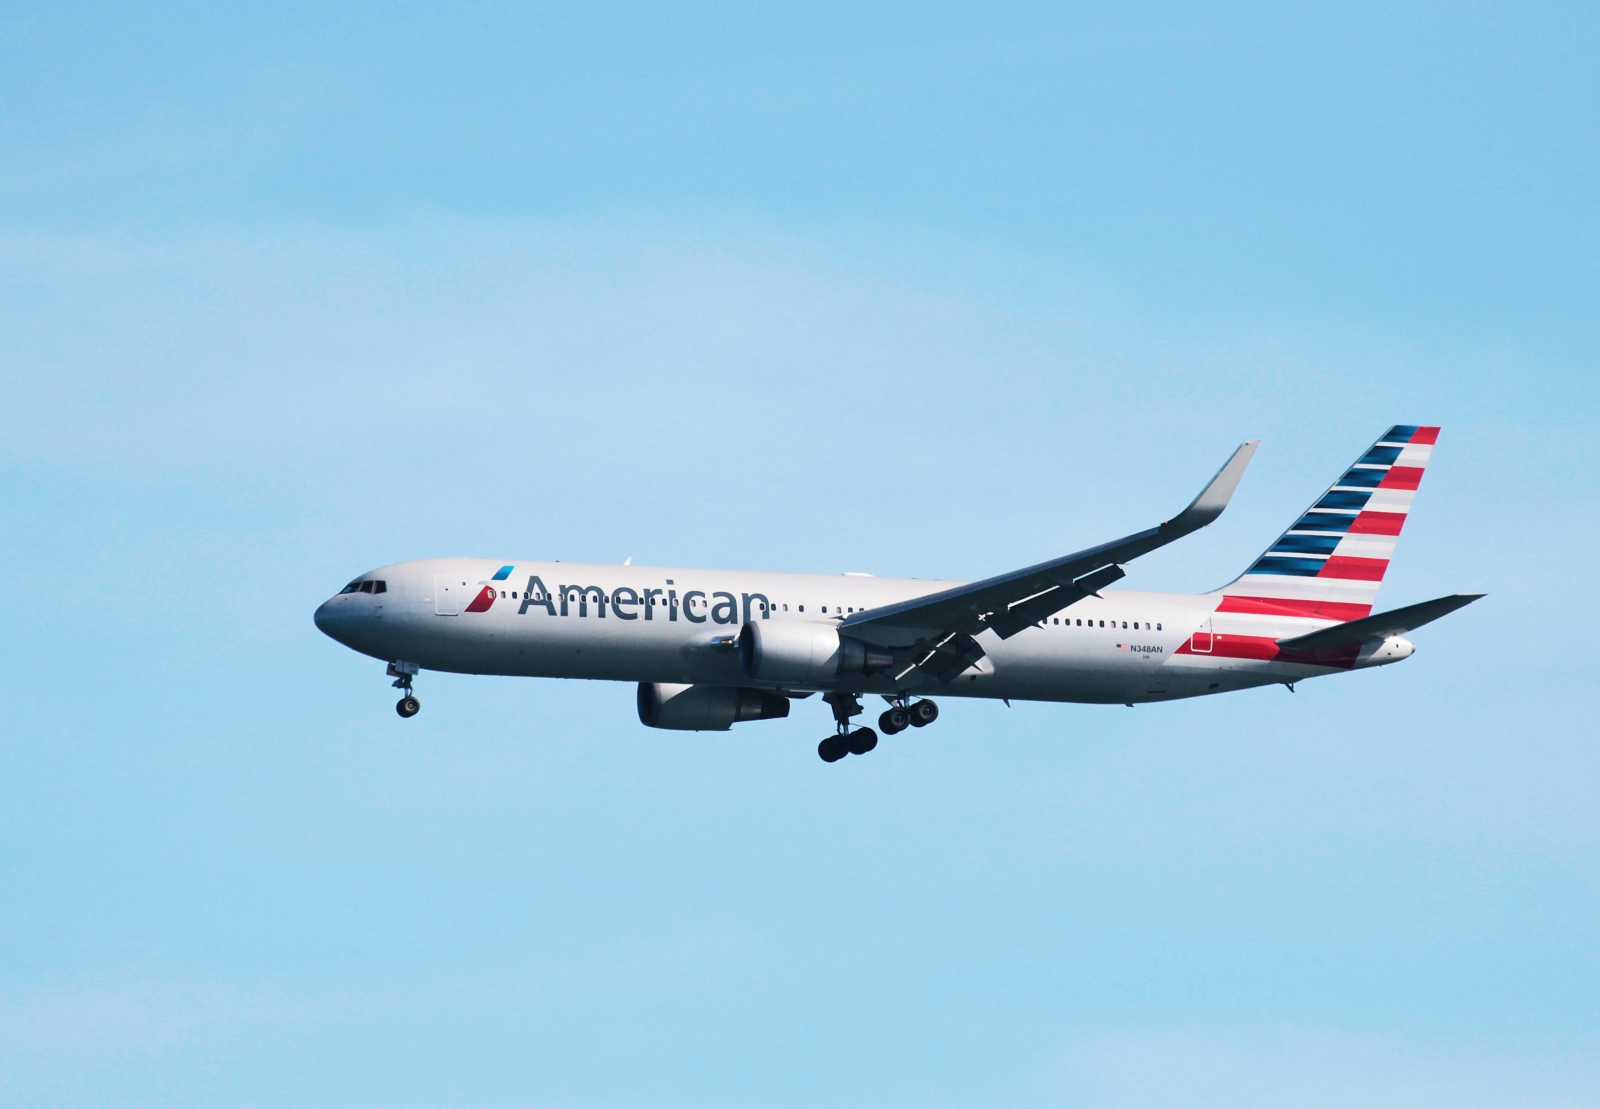 American Airlines Pilot Dies During Flight After Suffering